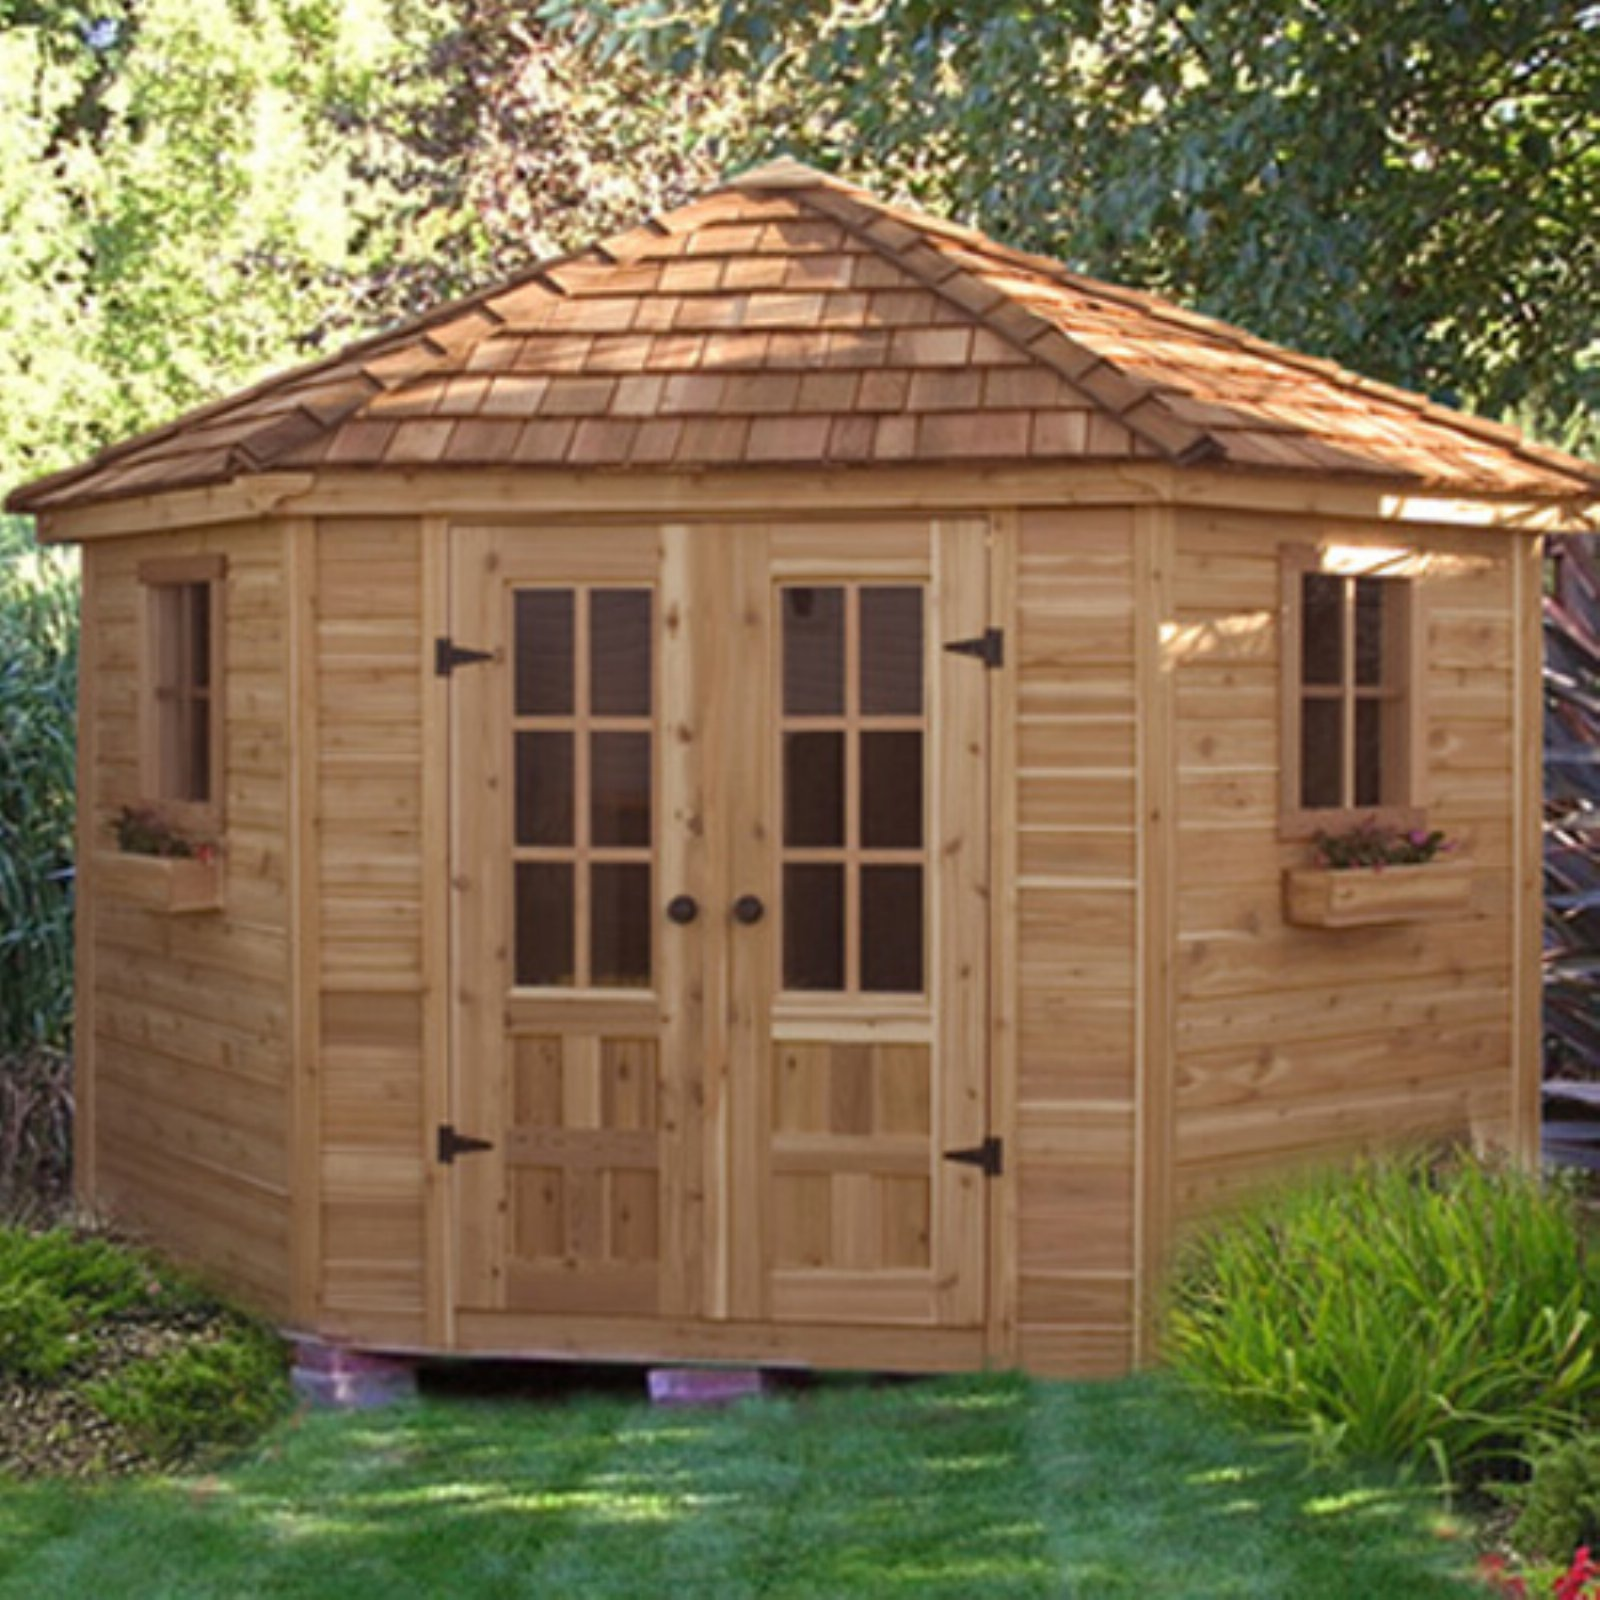 Outdoor Living Today PEN99 Penthouse 9 x 9 ft. Garden Shed